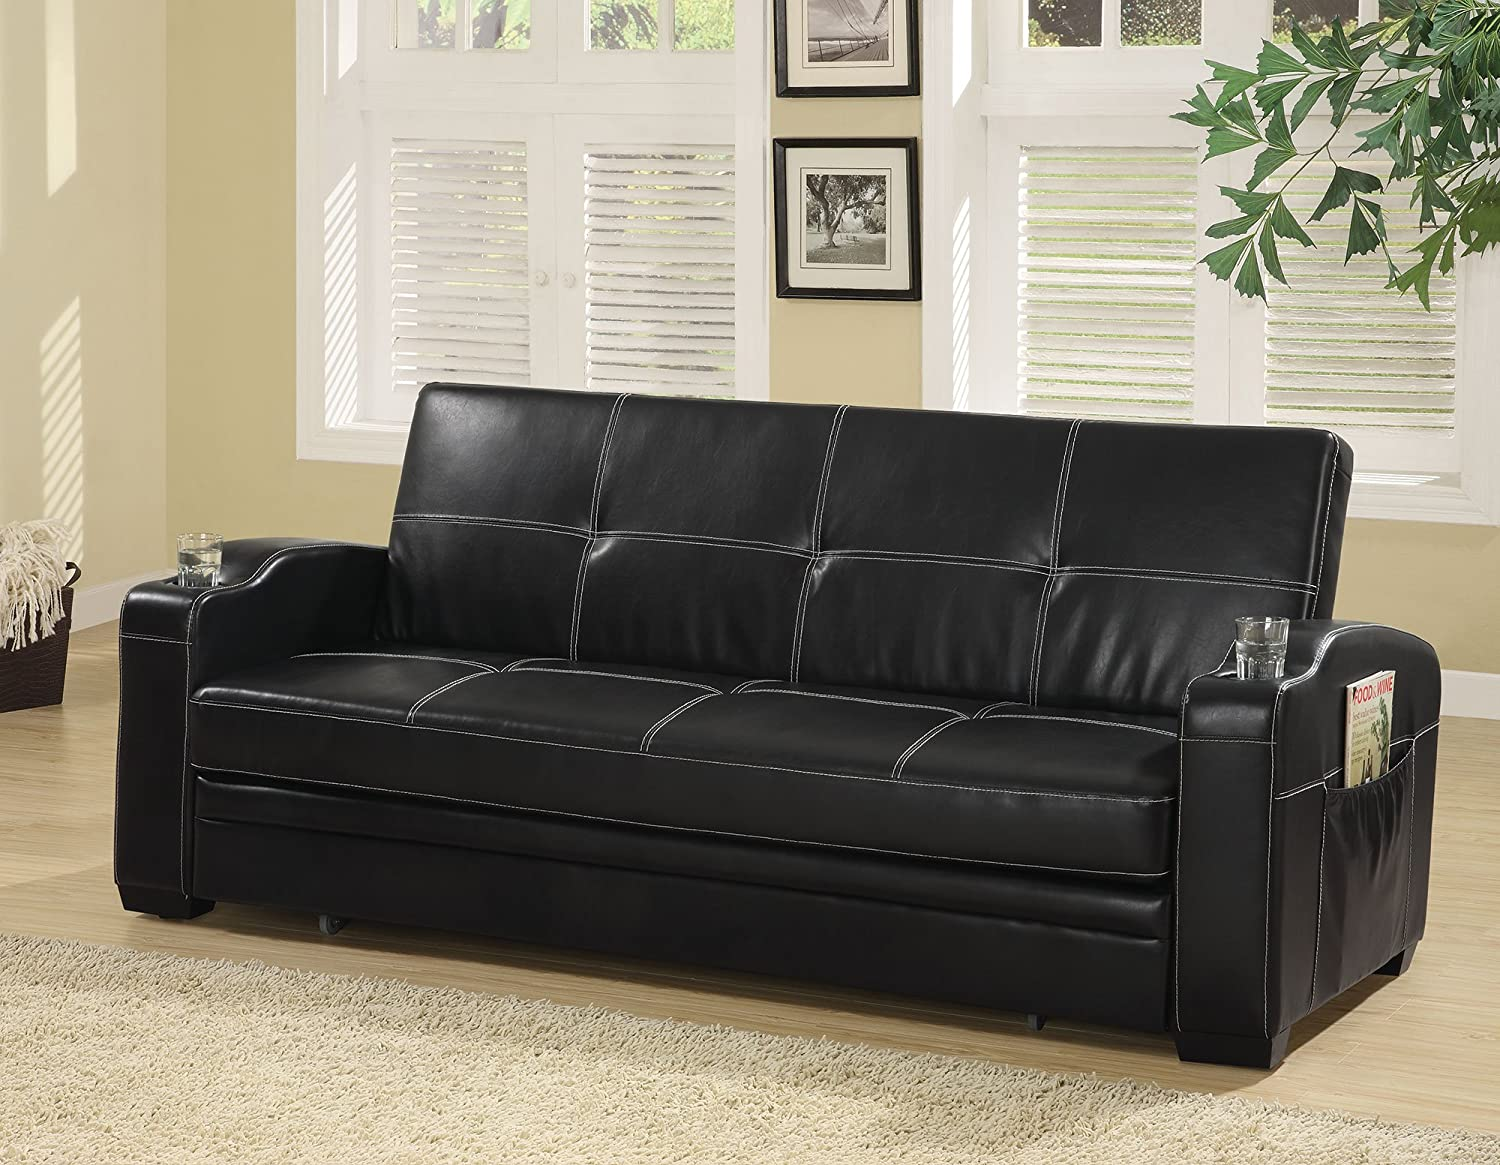 Amazon Com 1perfectchoice Contemporary Living Room Pull Out Sleeper